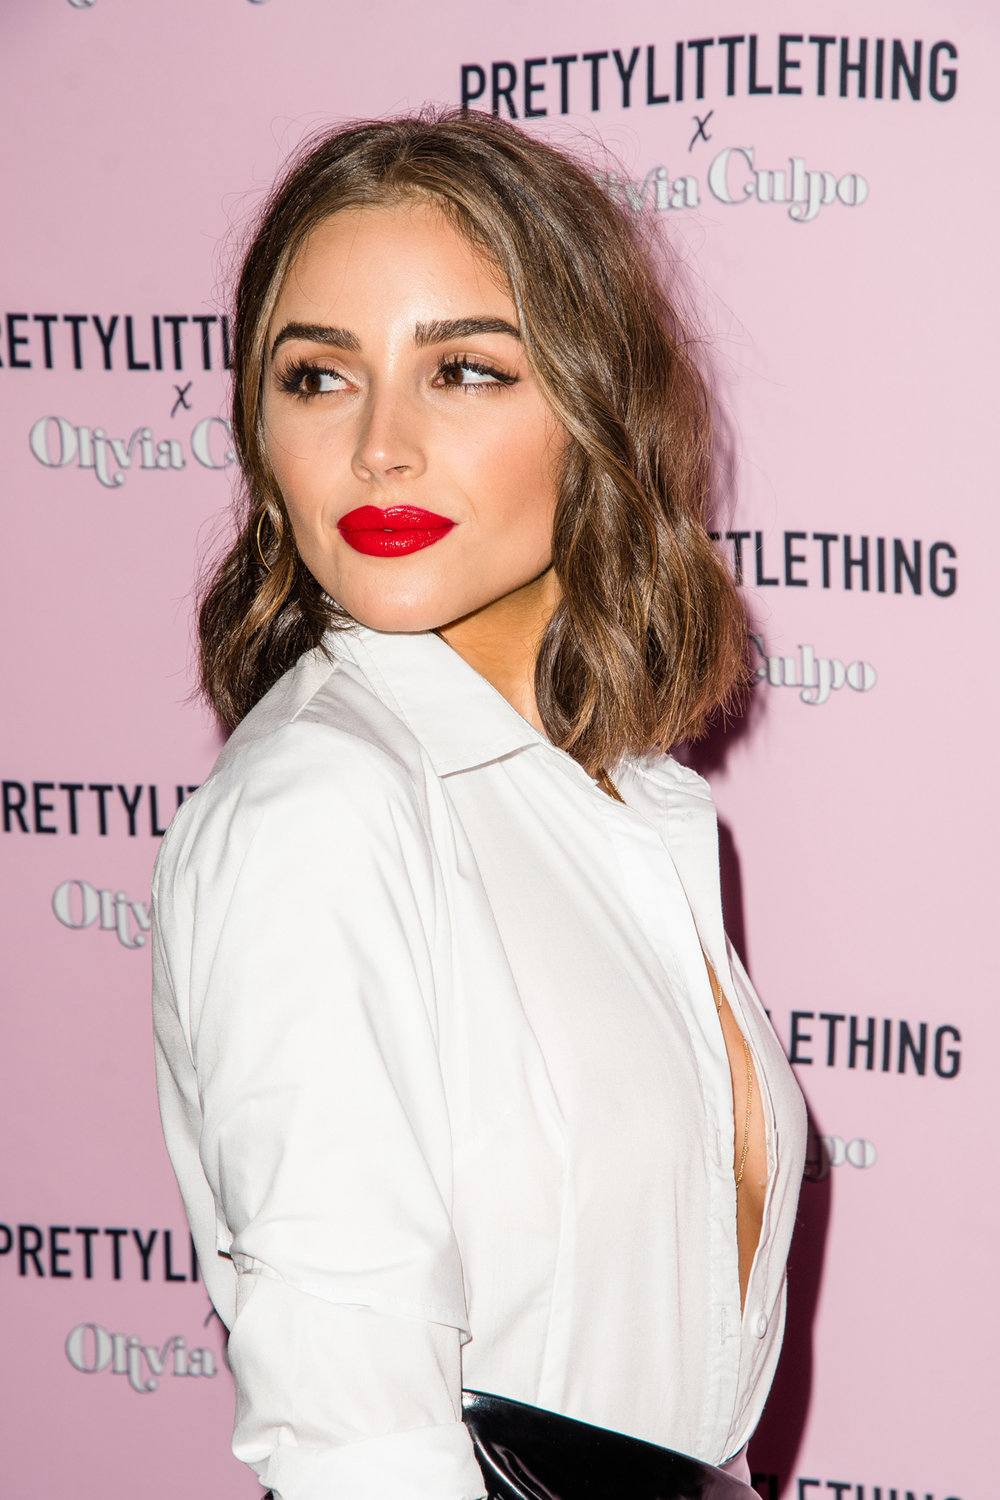 PrettyLittleThing PLT X Olivia Culpo Collection  Celebrity Launch Party Olivia Culpo on the red carpet.jpg